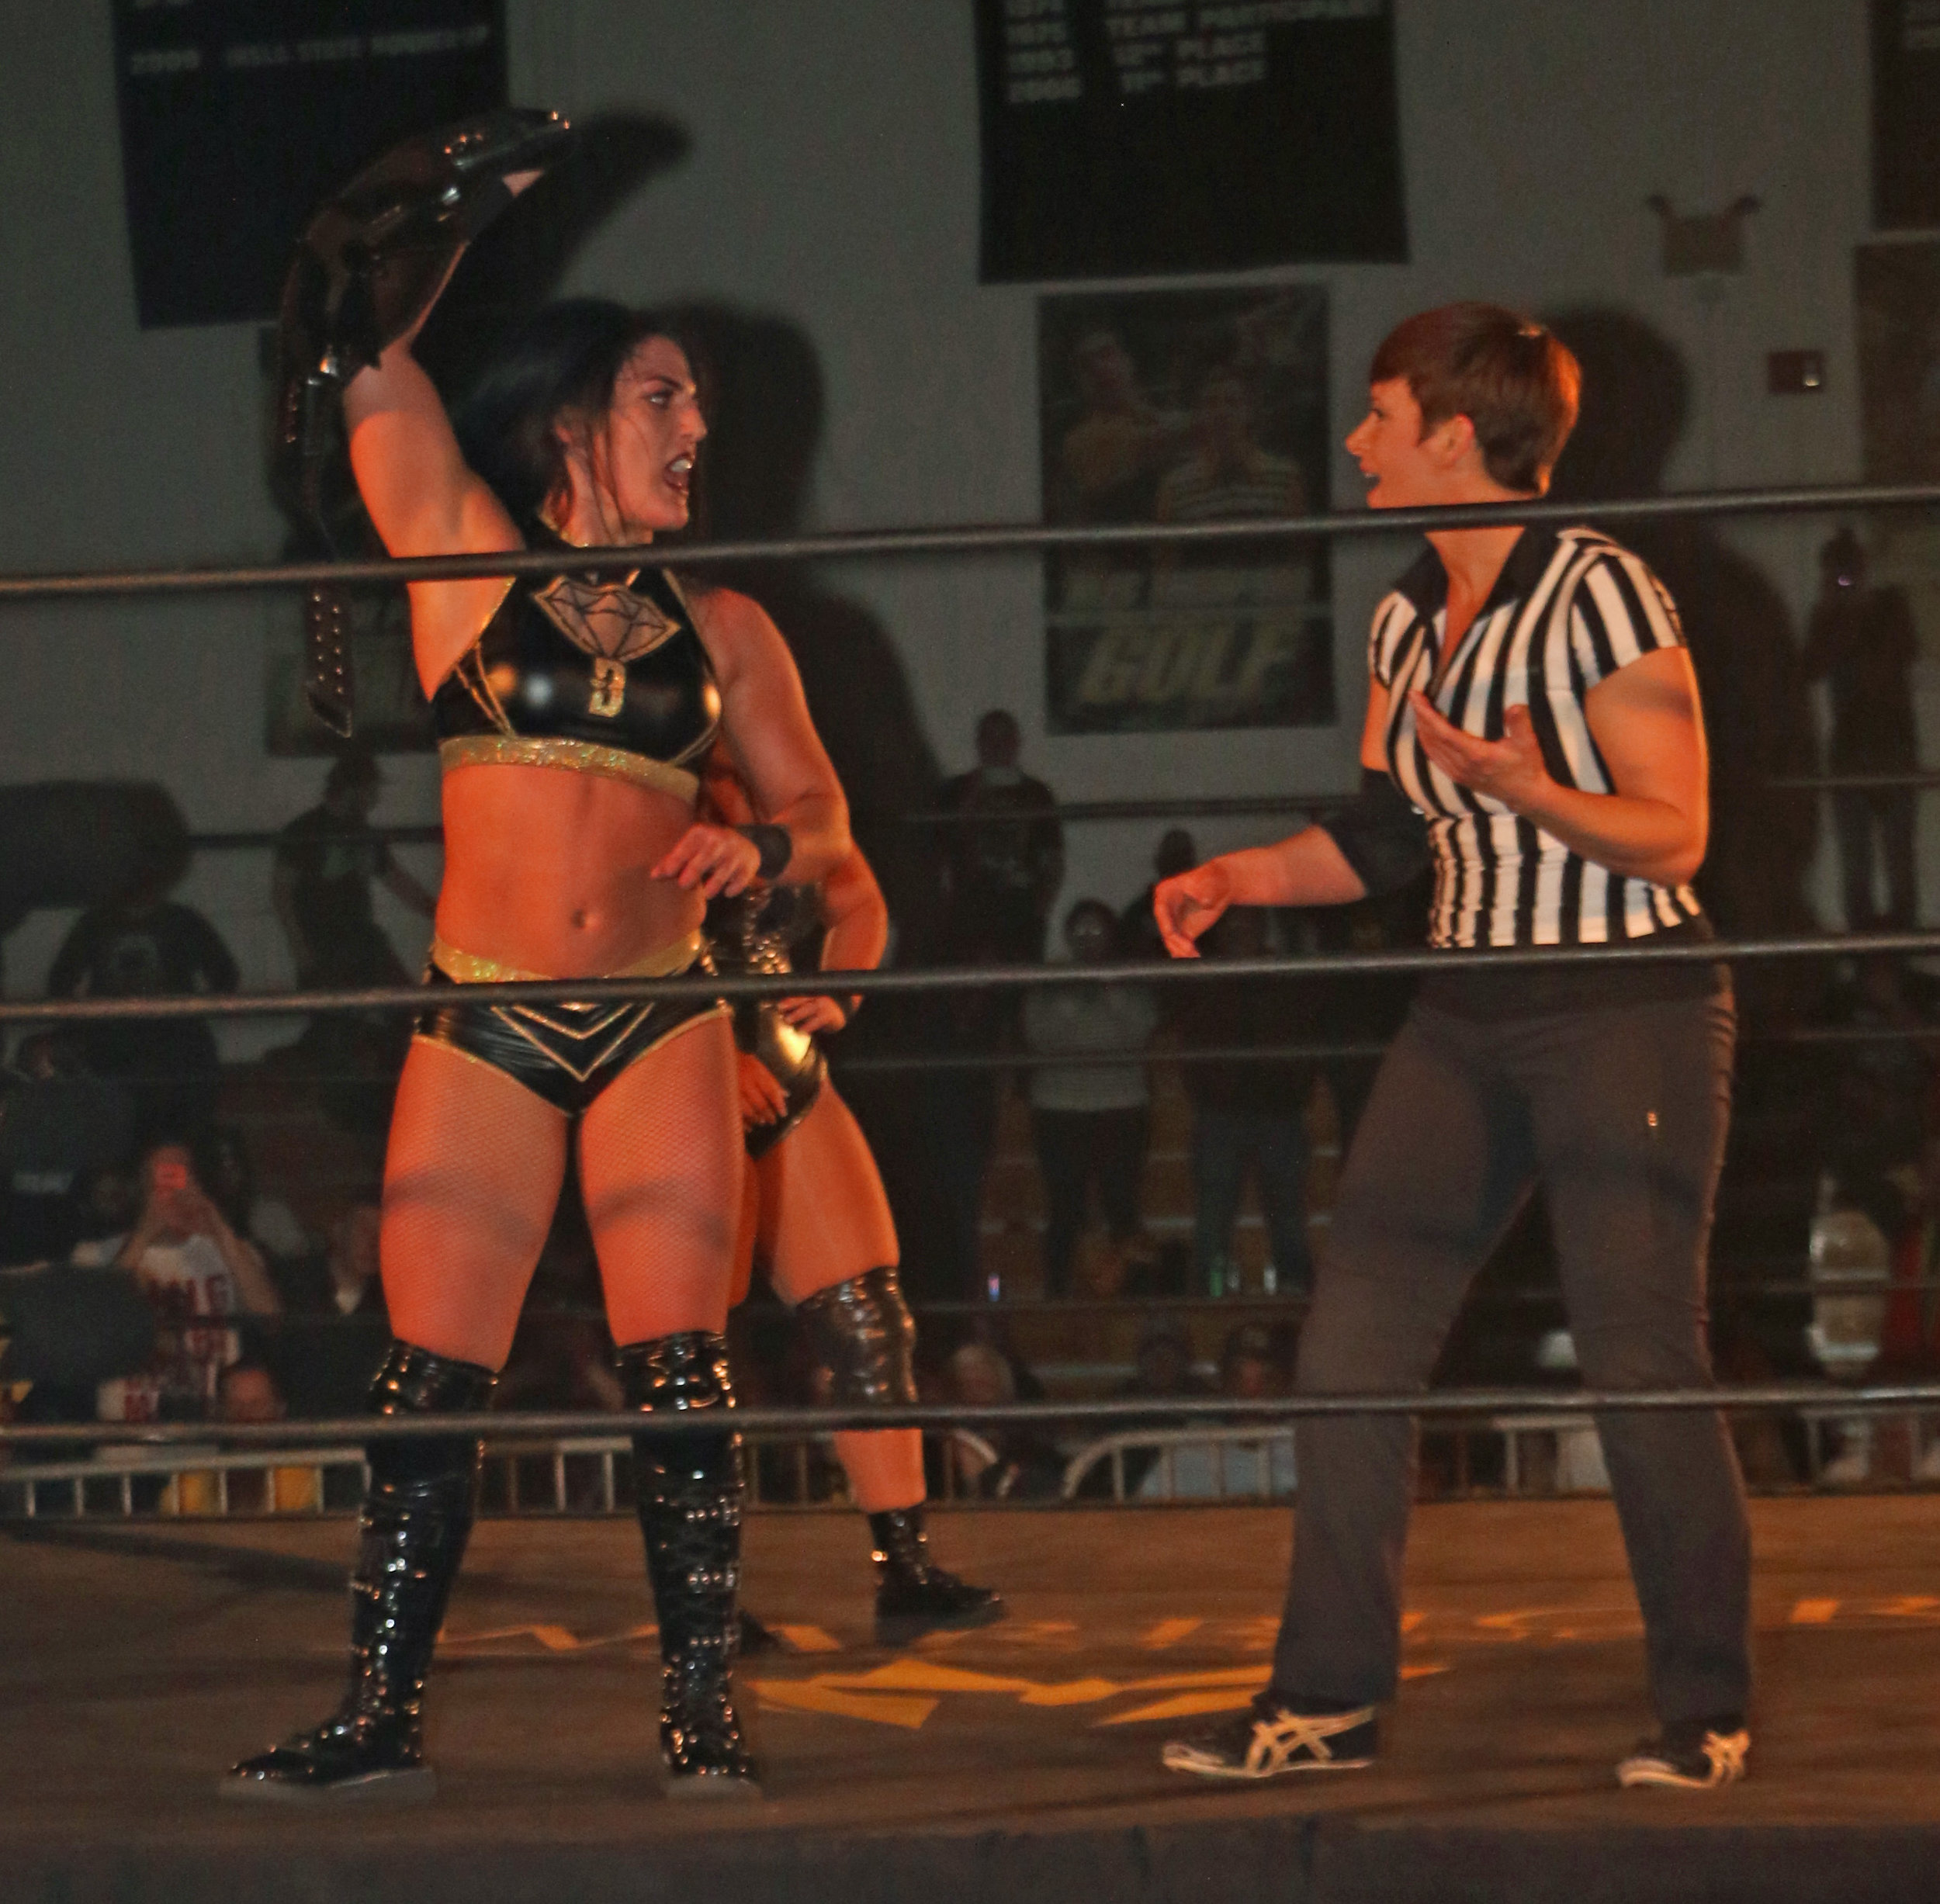 New Warrior Wrestling Women's Champion Tessa Blanchard yells at referee Molly Holly after the match.